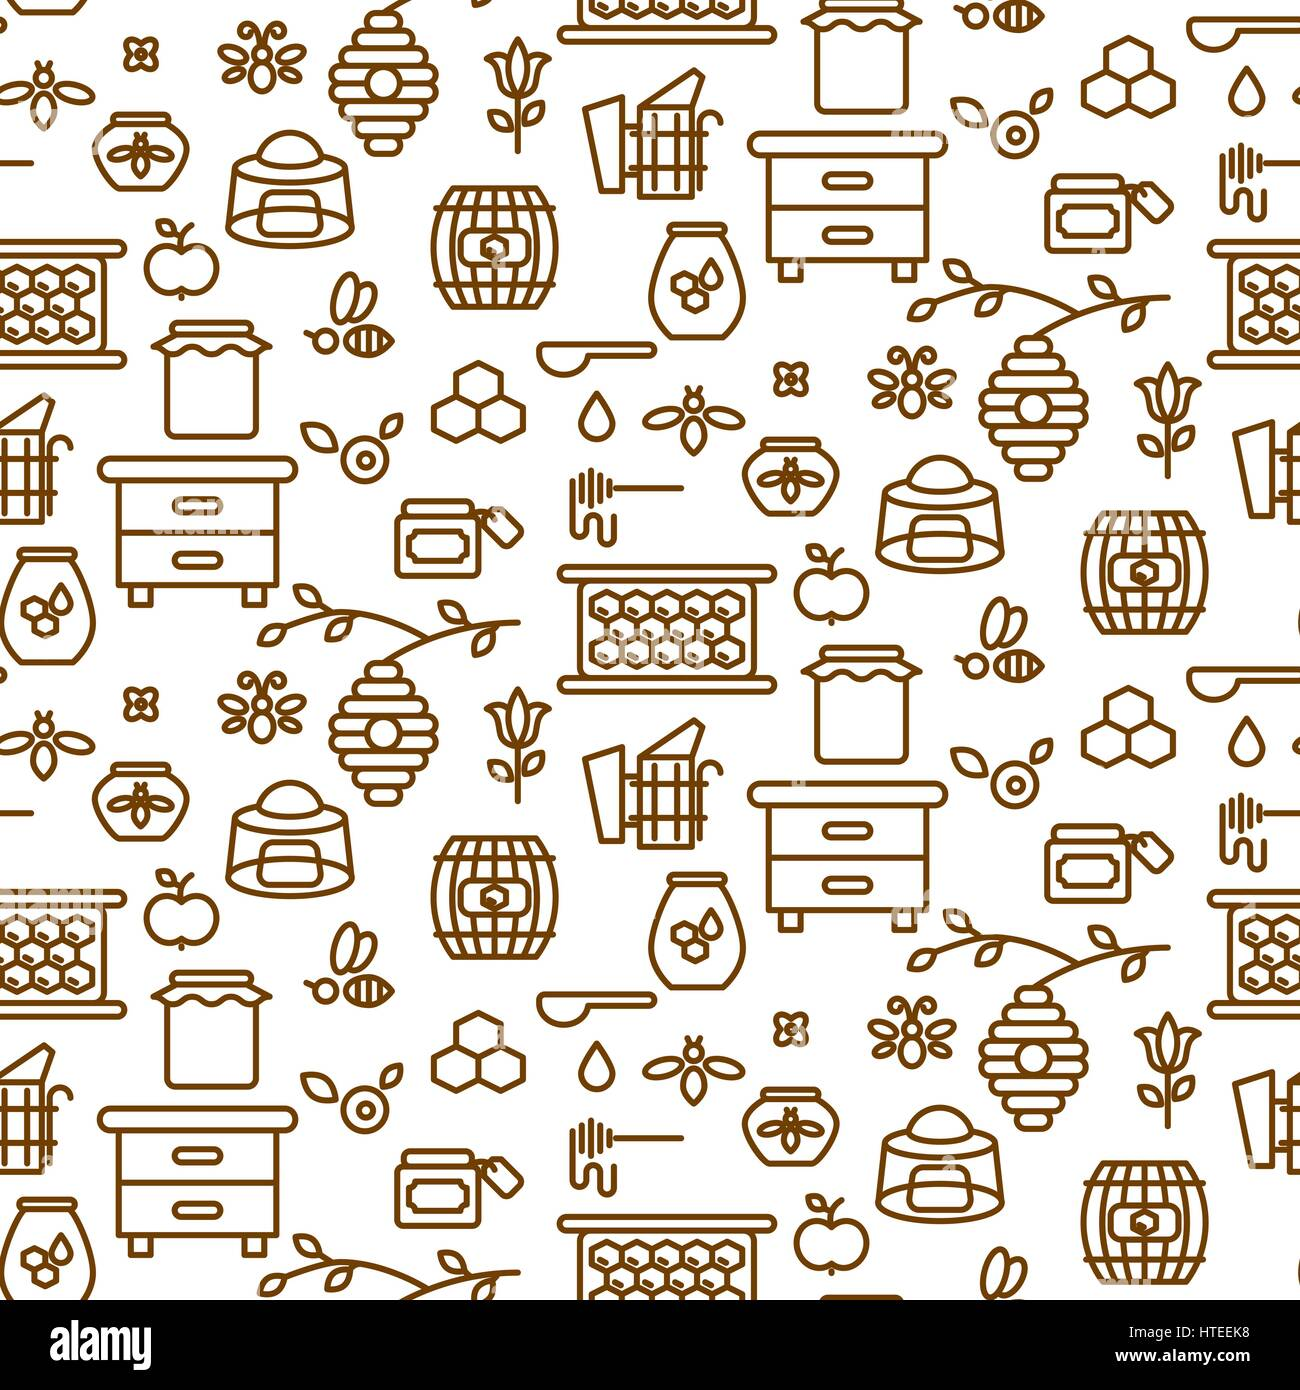 Apiary outline icon seamless vector pattern. - Stock Vector